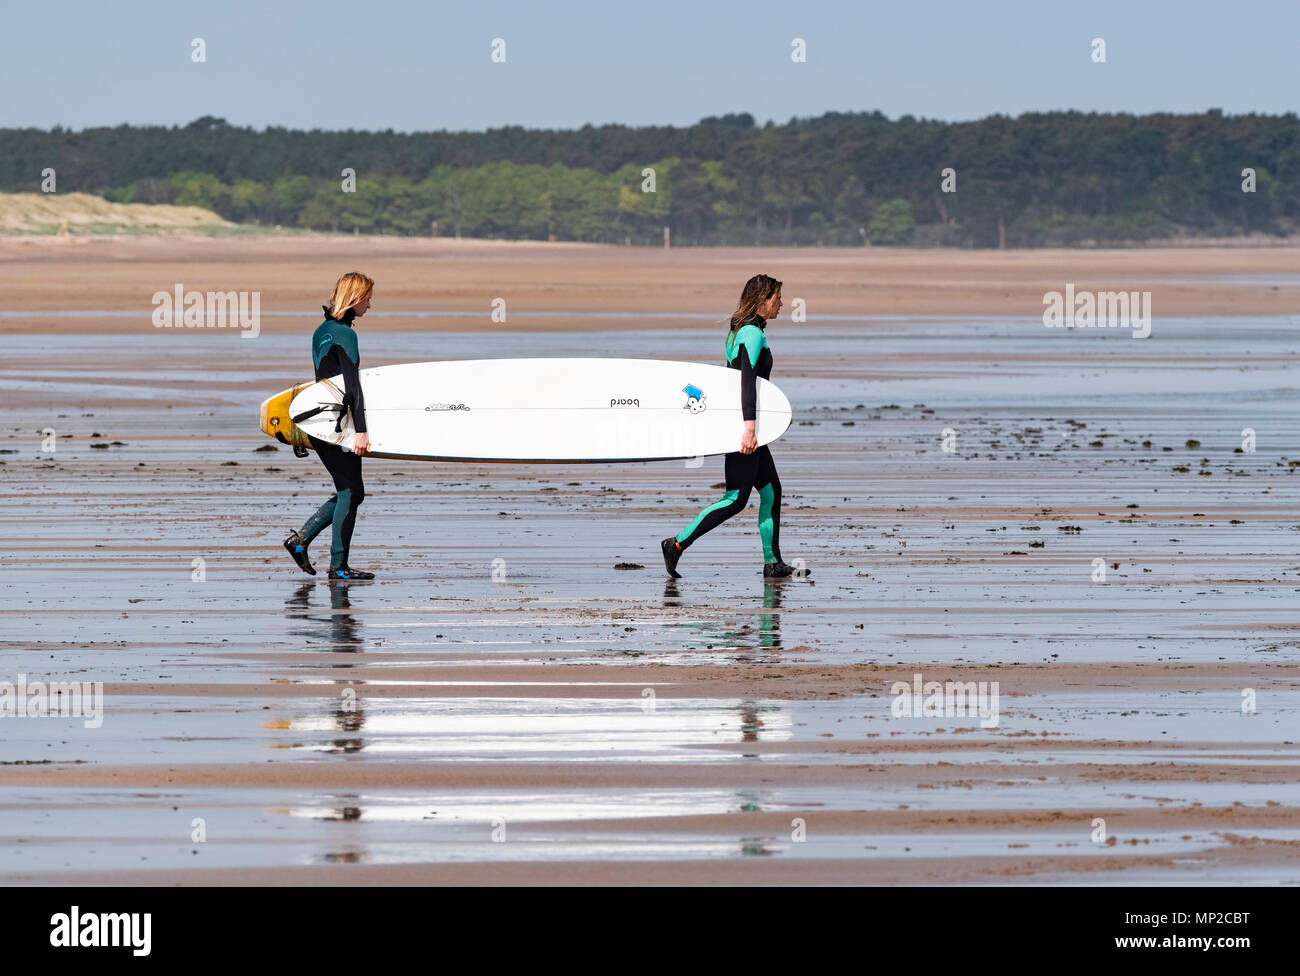 Two female surfers carry surfboards to sea at Belhaven Beach, East Lothian, Scotland, United Kingdom - Stock Image